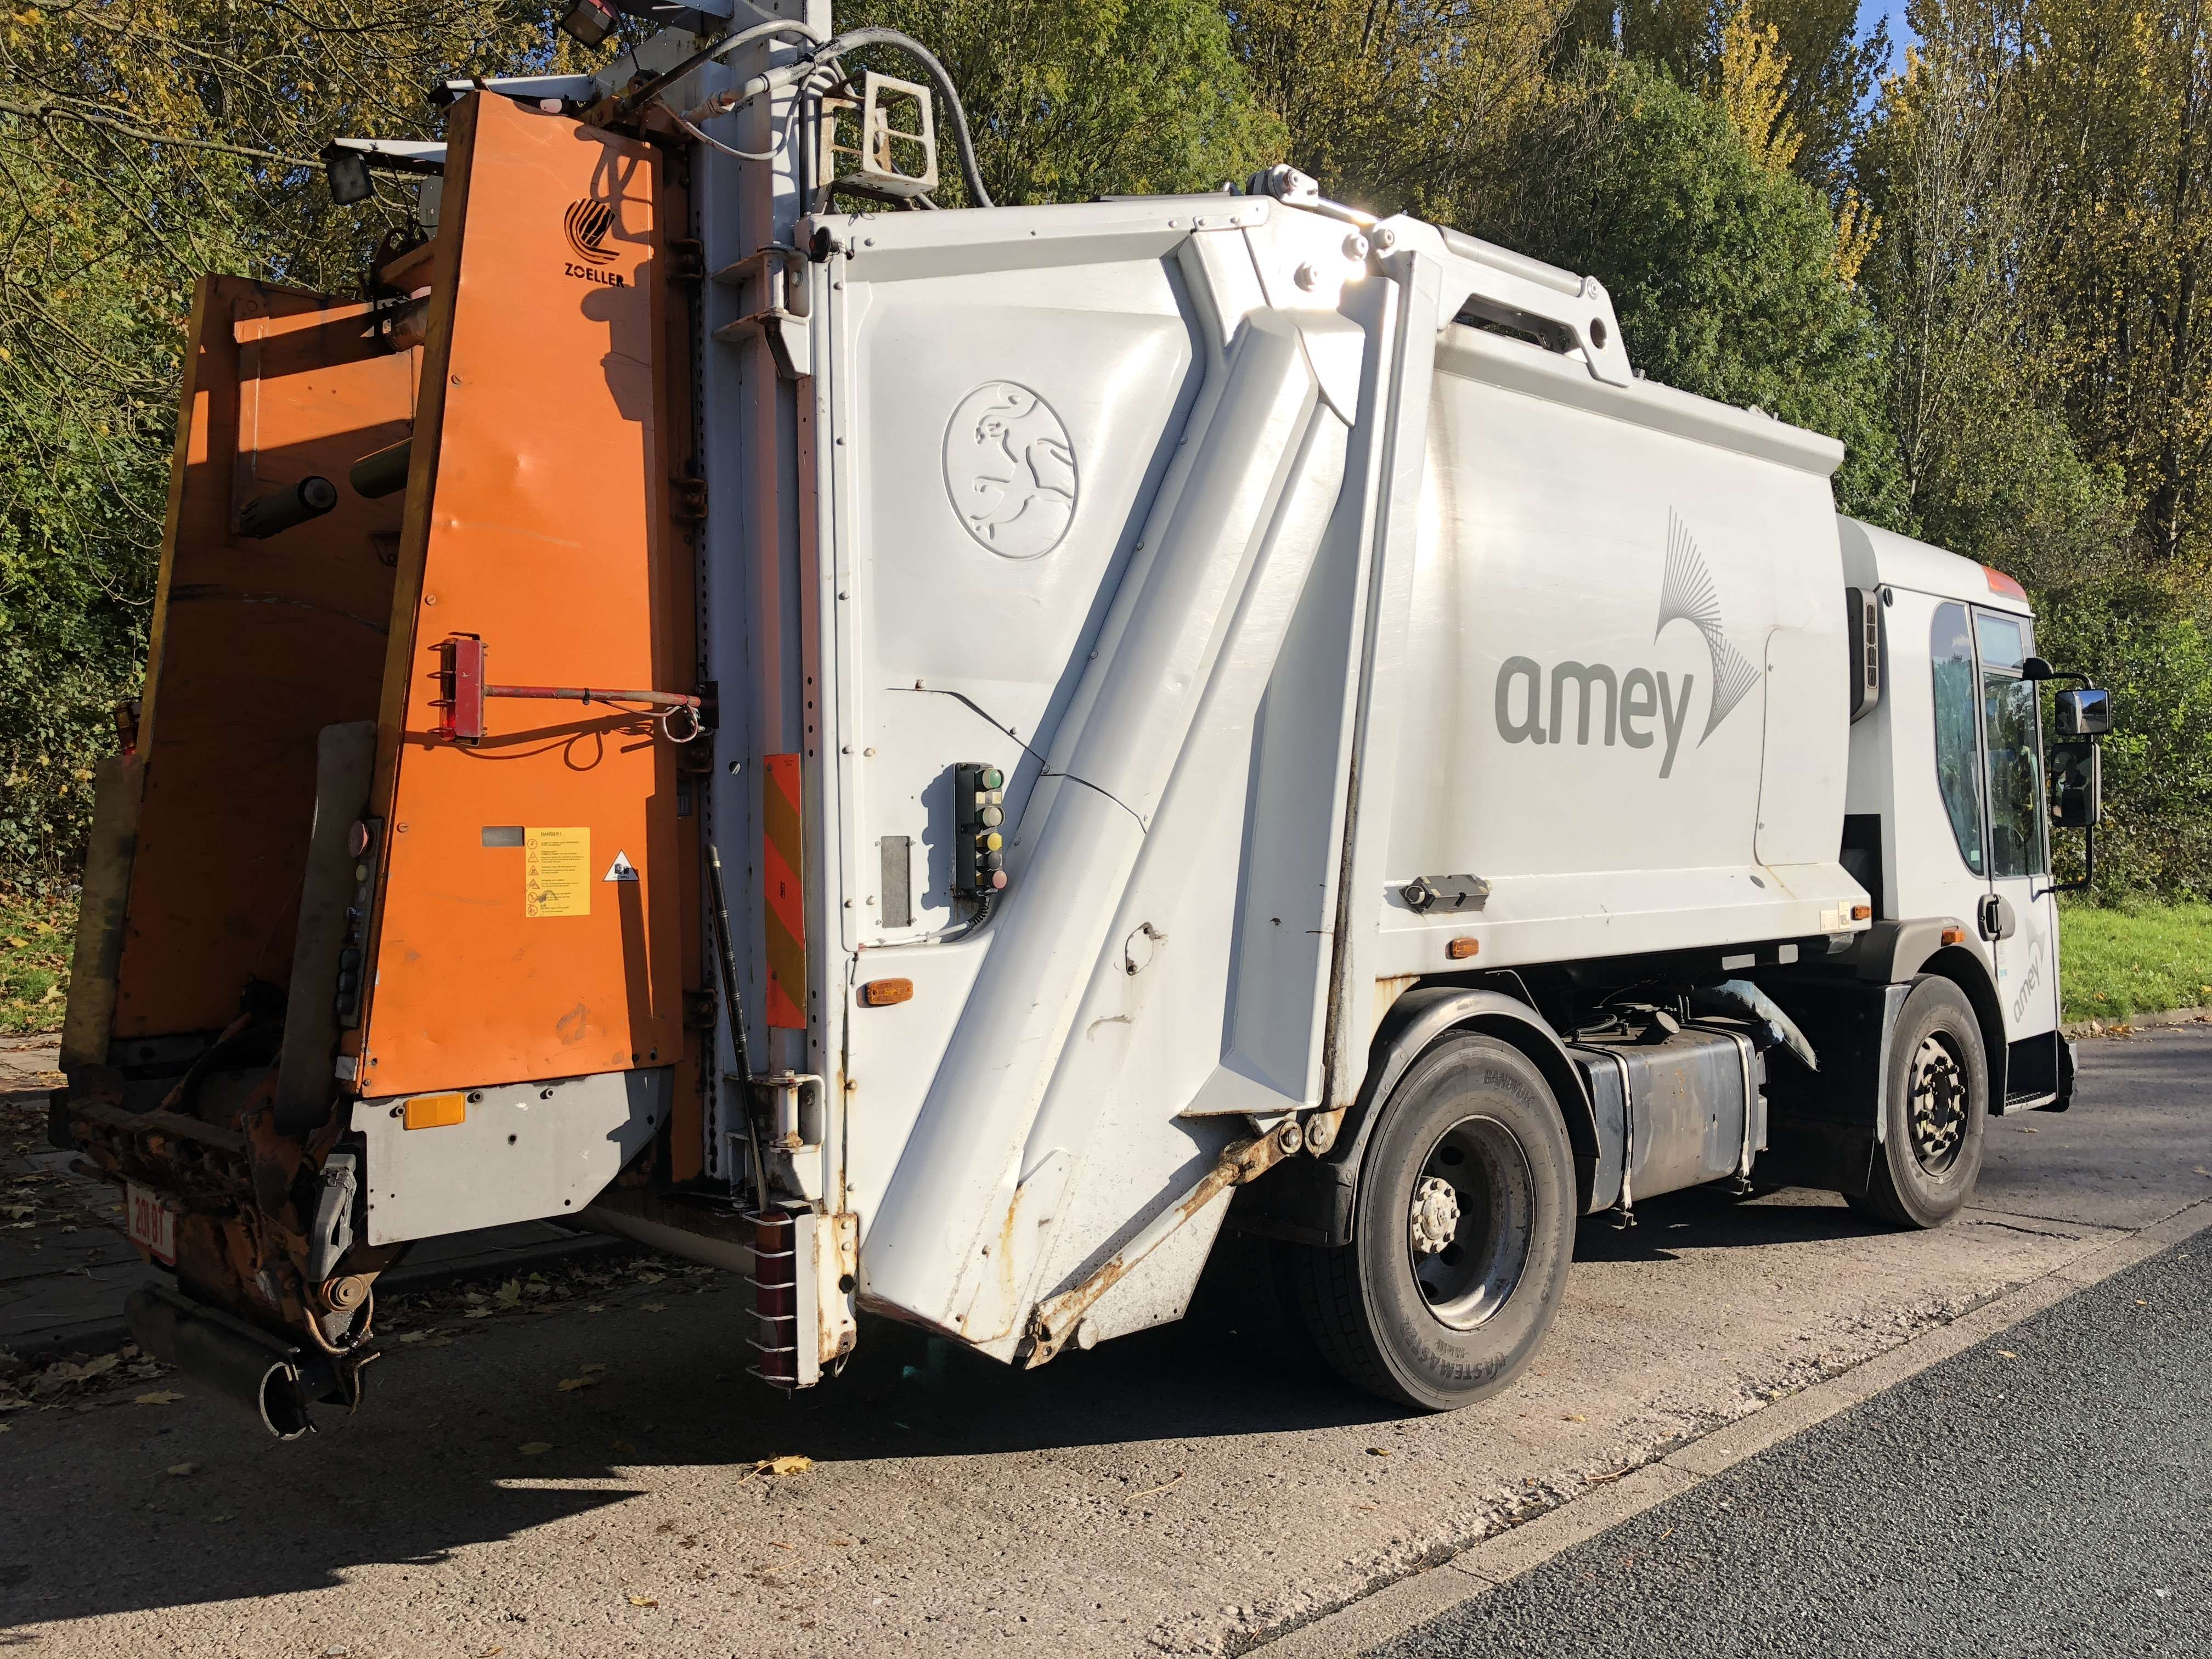 2008 Dennis 4x2 narrow track refuse collection truck for sale 5